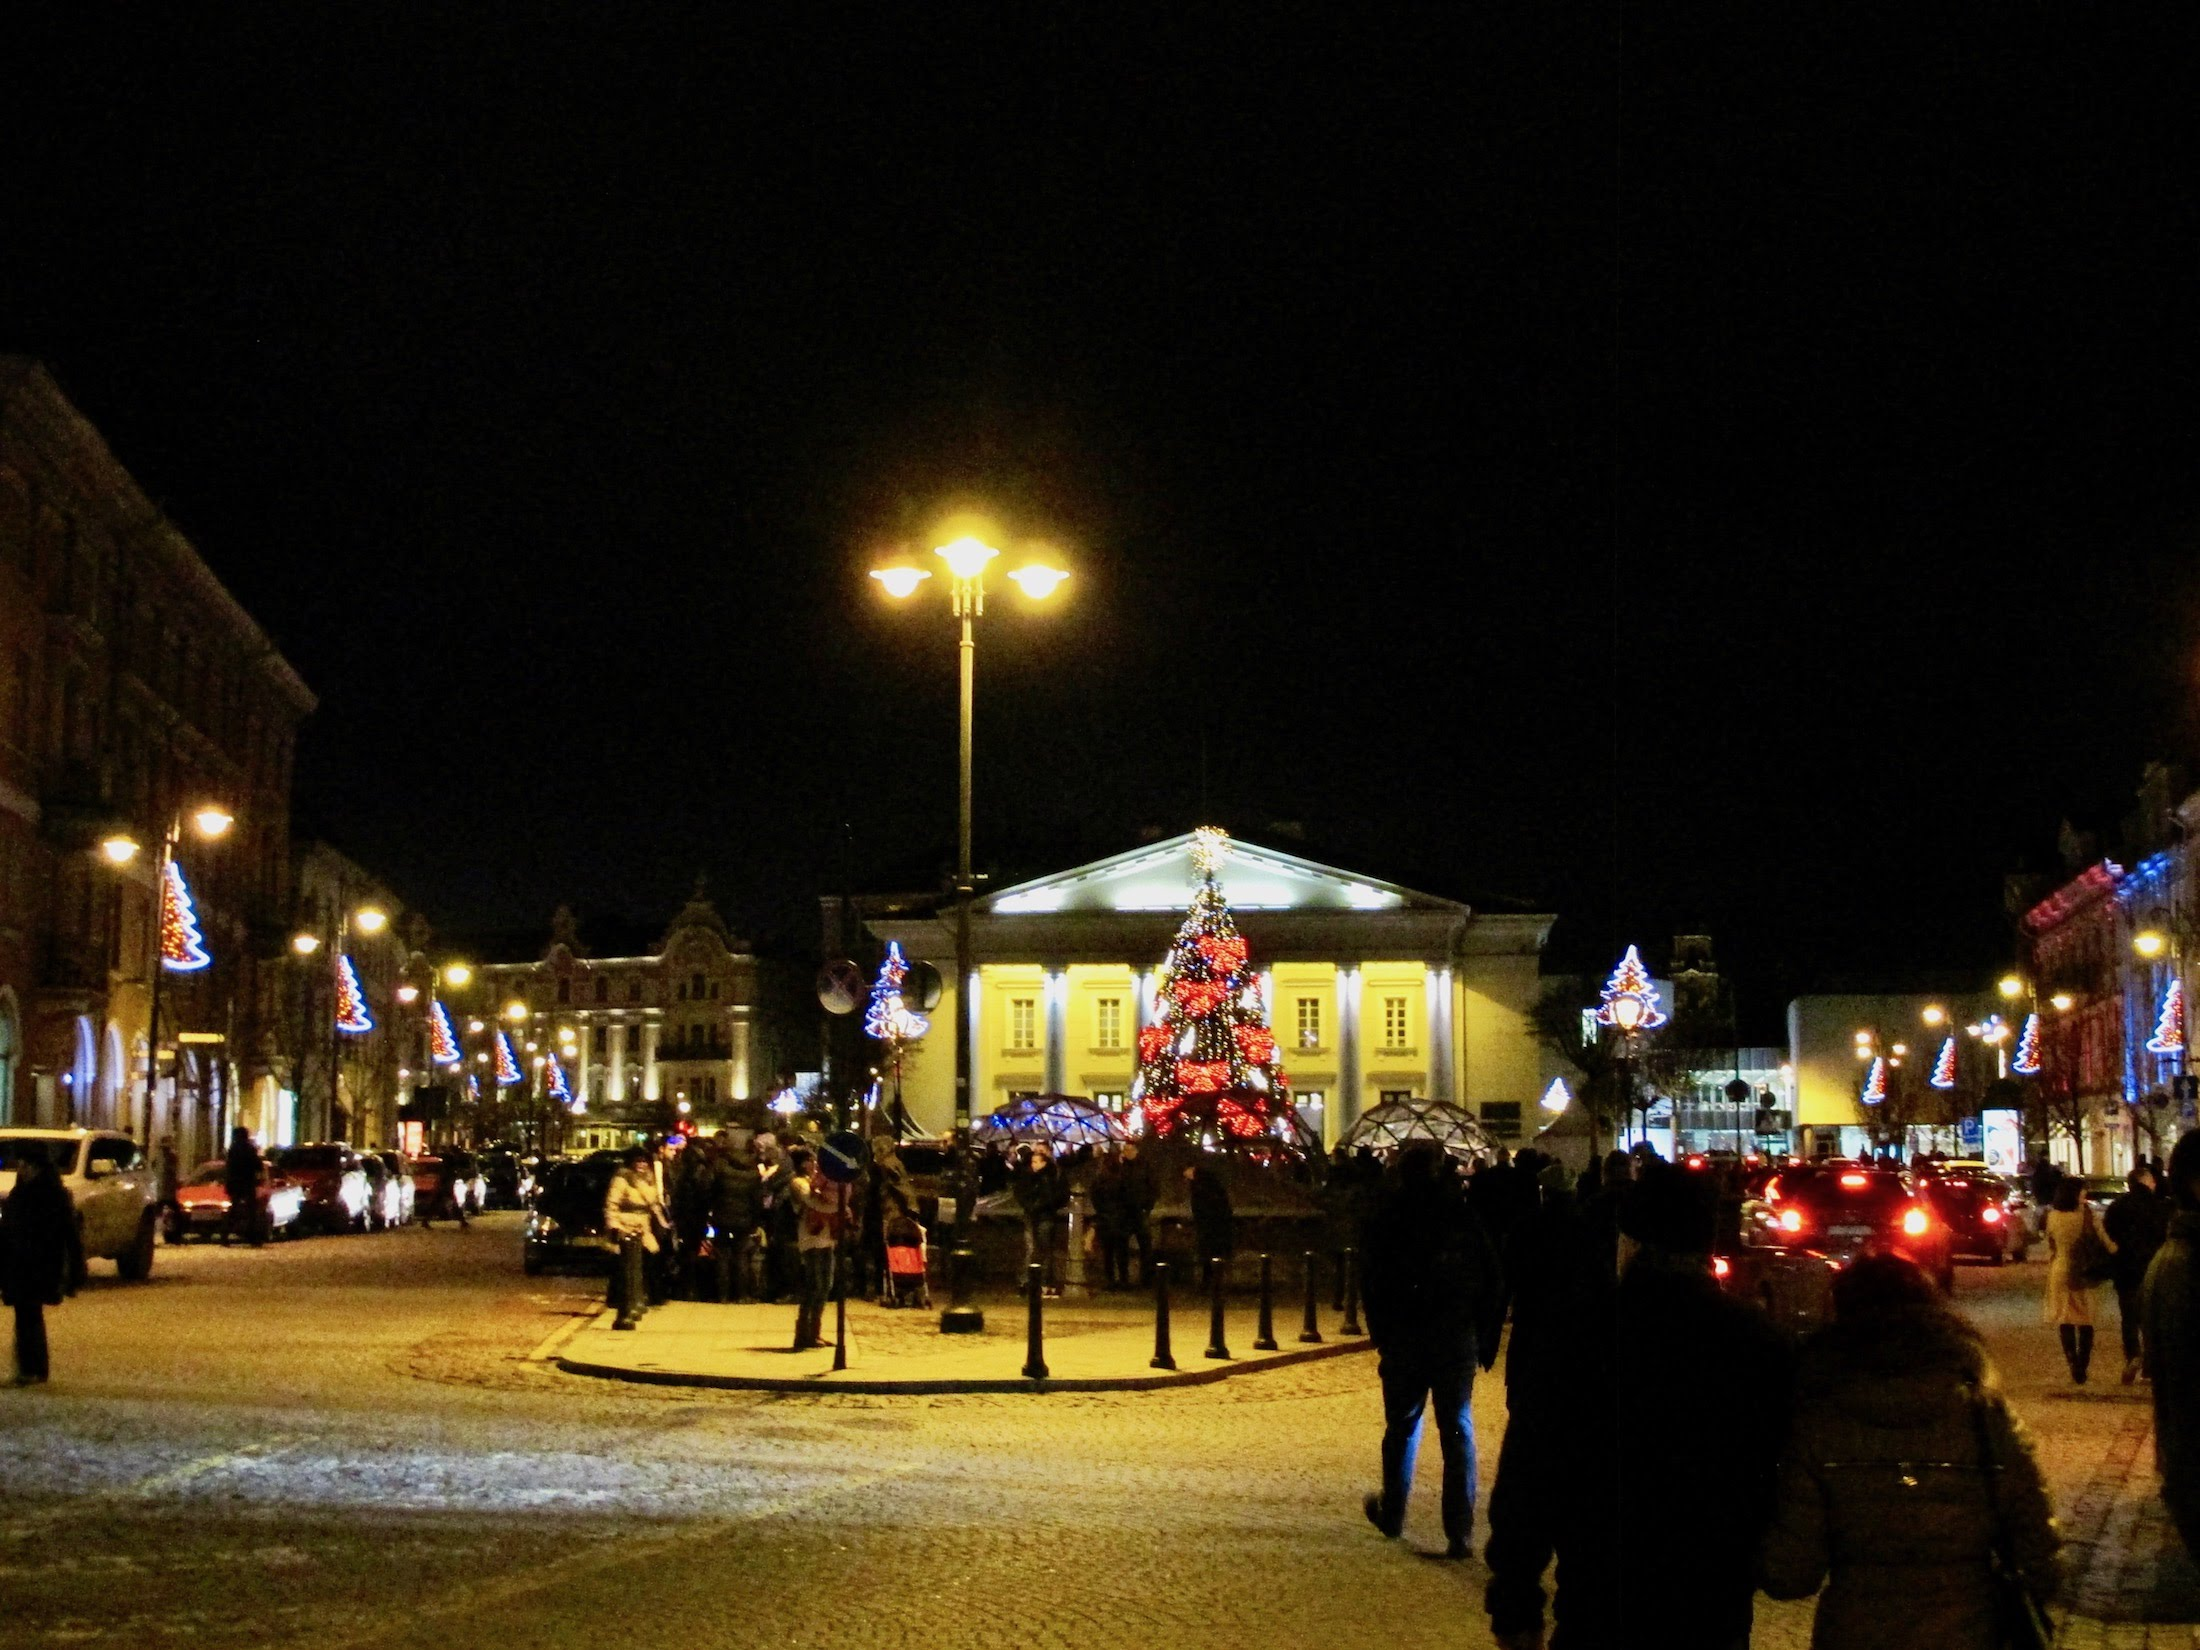 International Christmas Charity Bazaar, which has become a tradition is held in Vilnius City Hall square - Didžioji g. 31, Vilnius 01128, Lithuania